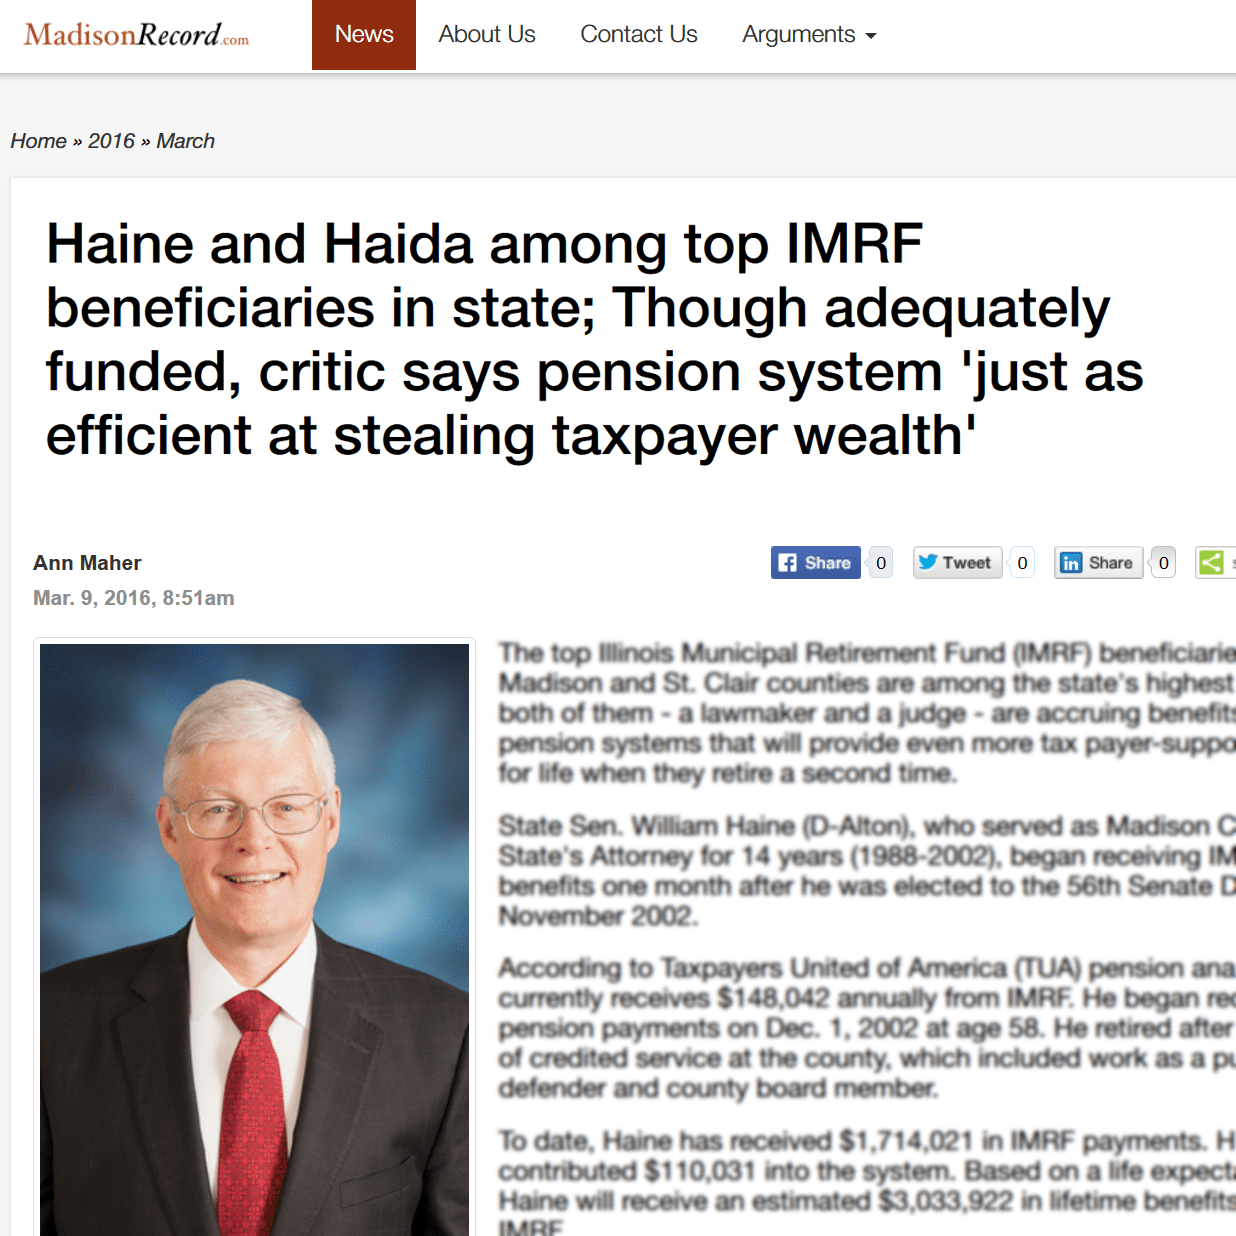 Madison Record|Haine and Haida among top IMRF beneficiaries in state; Though adequately funded, critic says pension system 'just as efficient at stealing taxpayer wealth'